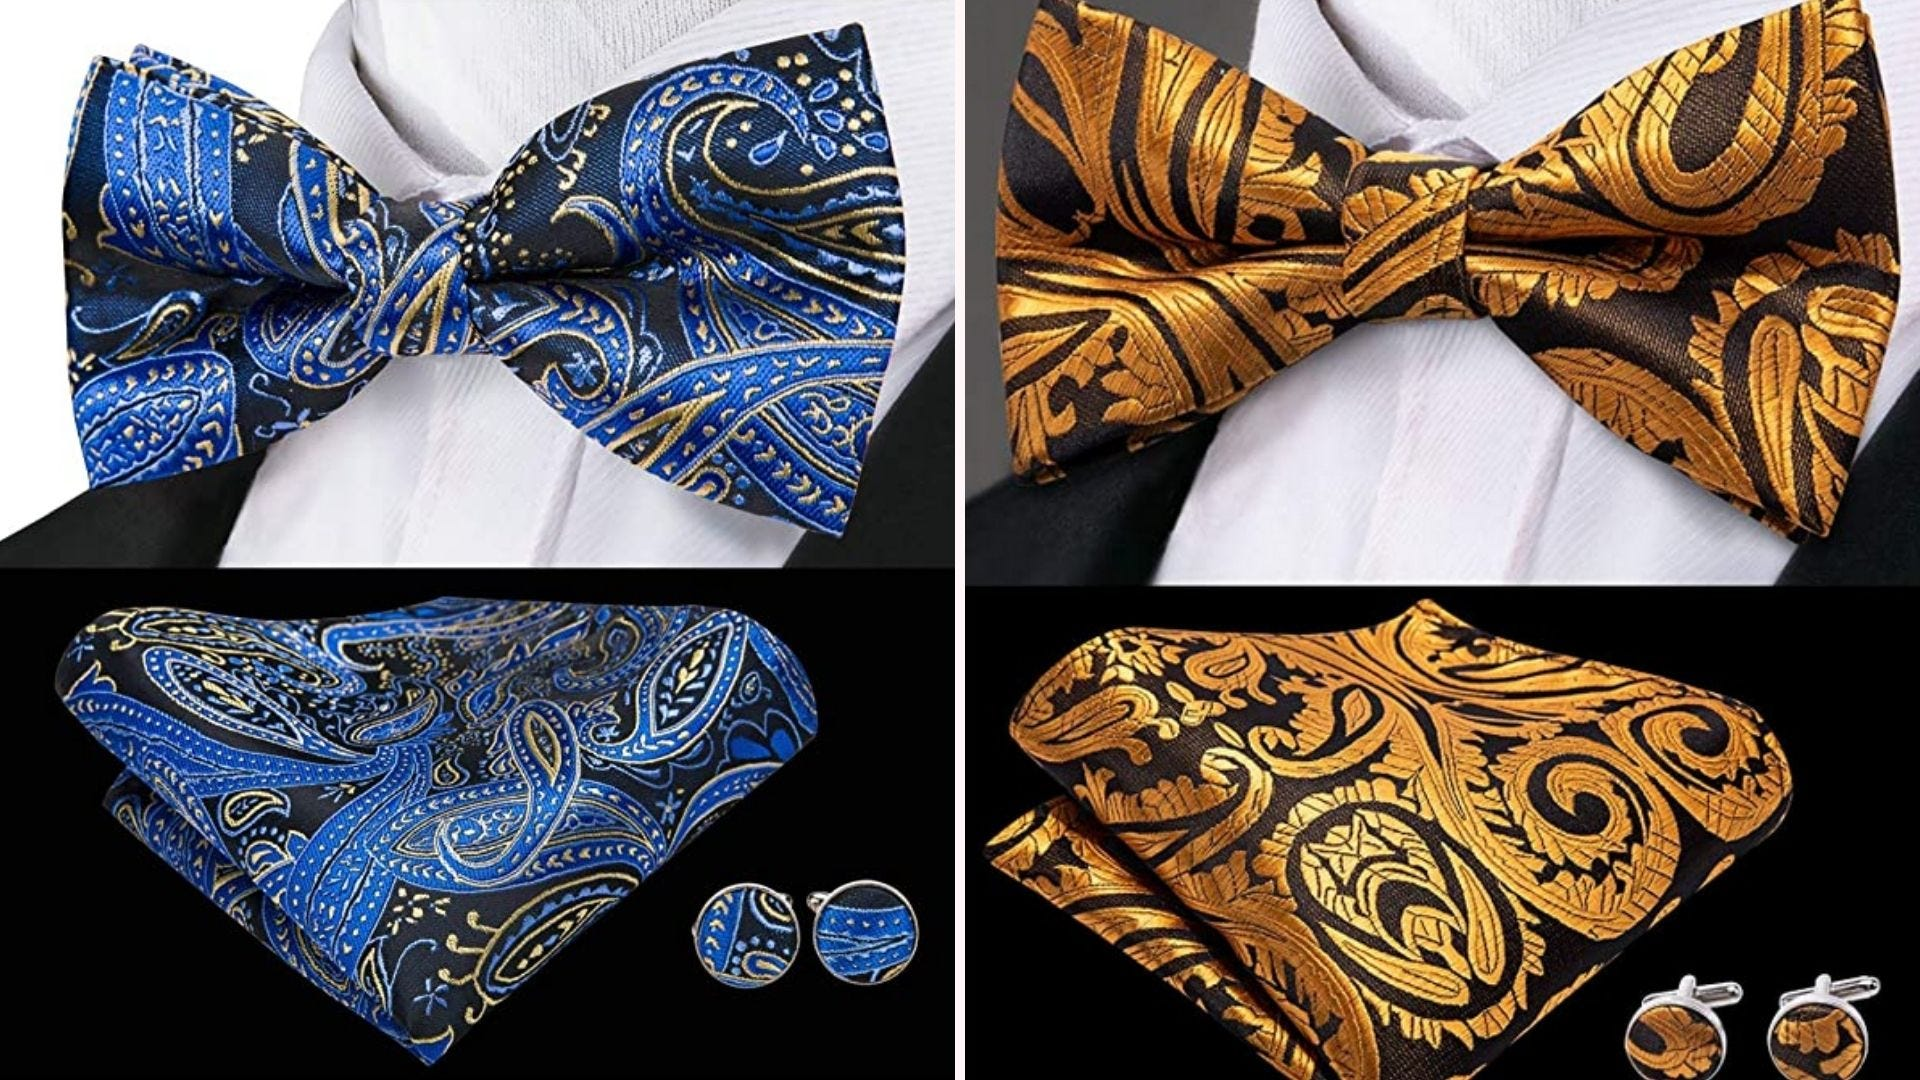 Two bow ties with matching pocket squares and cufflinks.